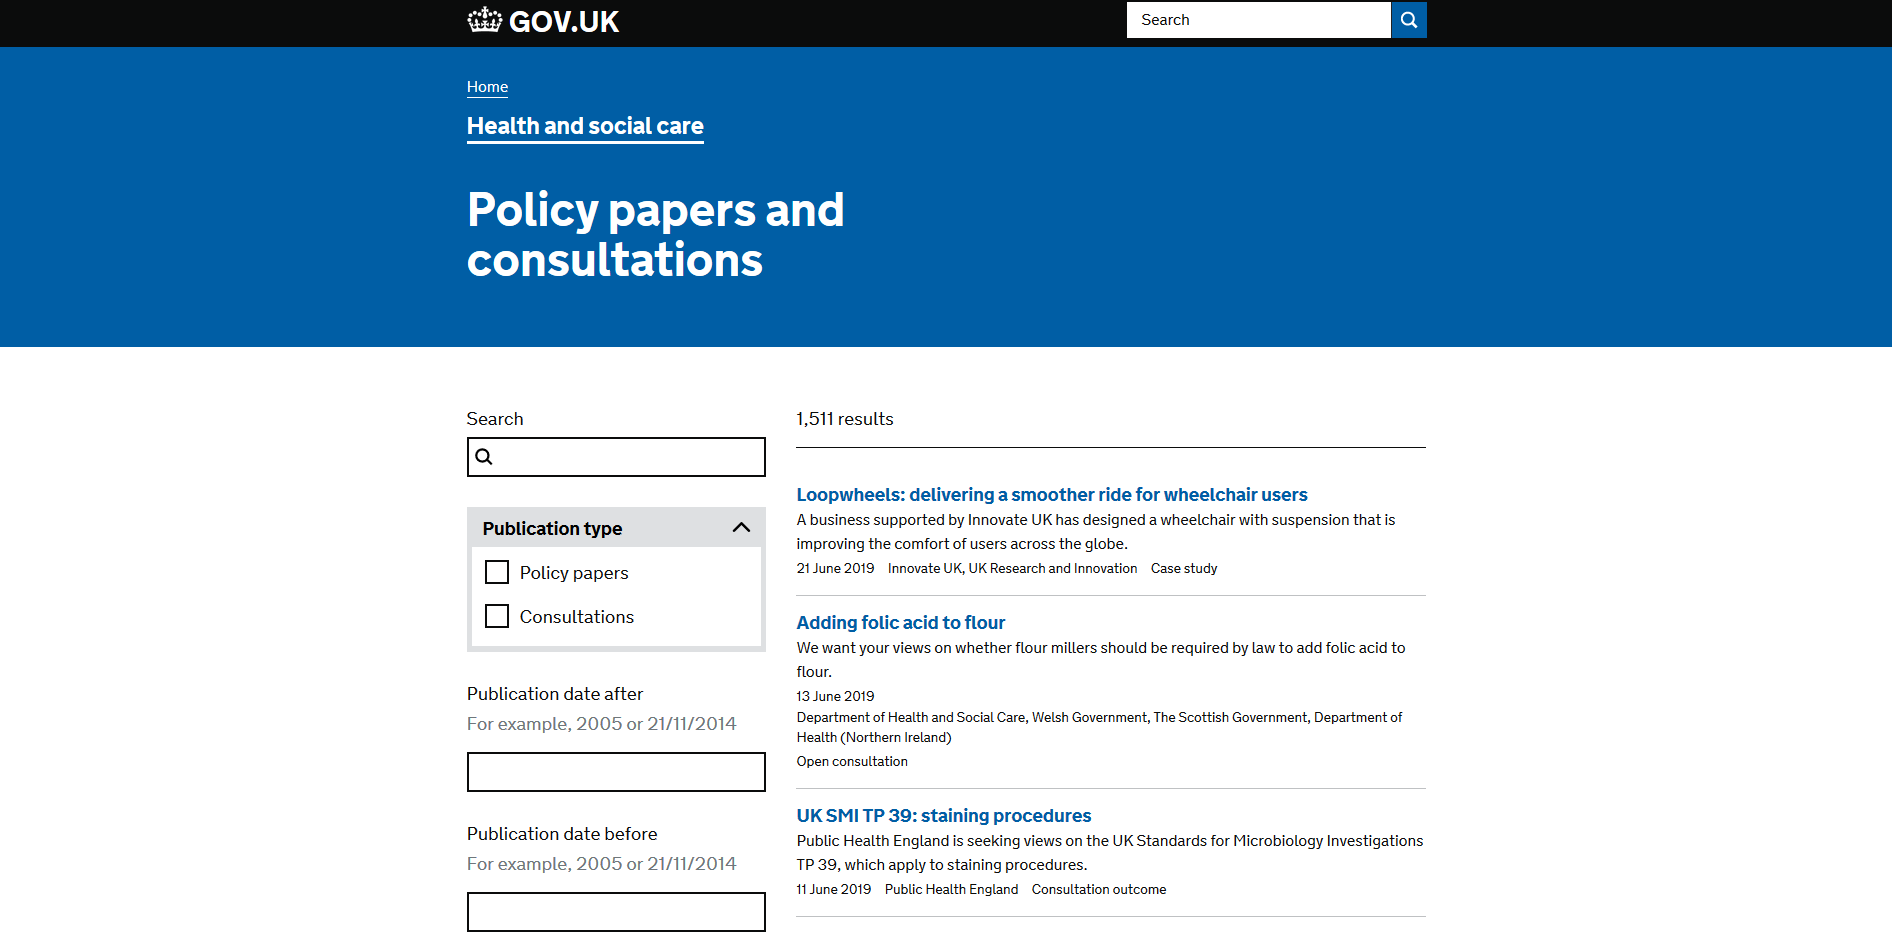 Department of Health and Social Care Policy papers and consultations